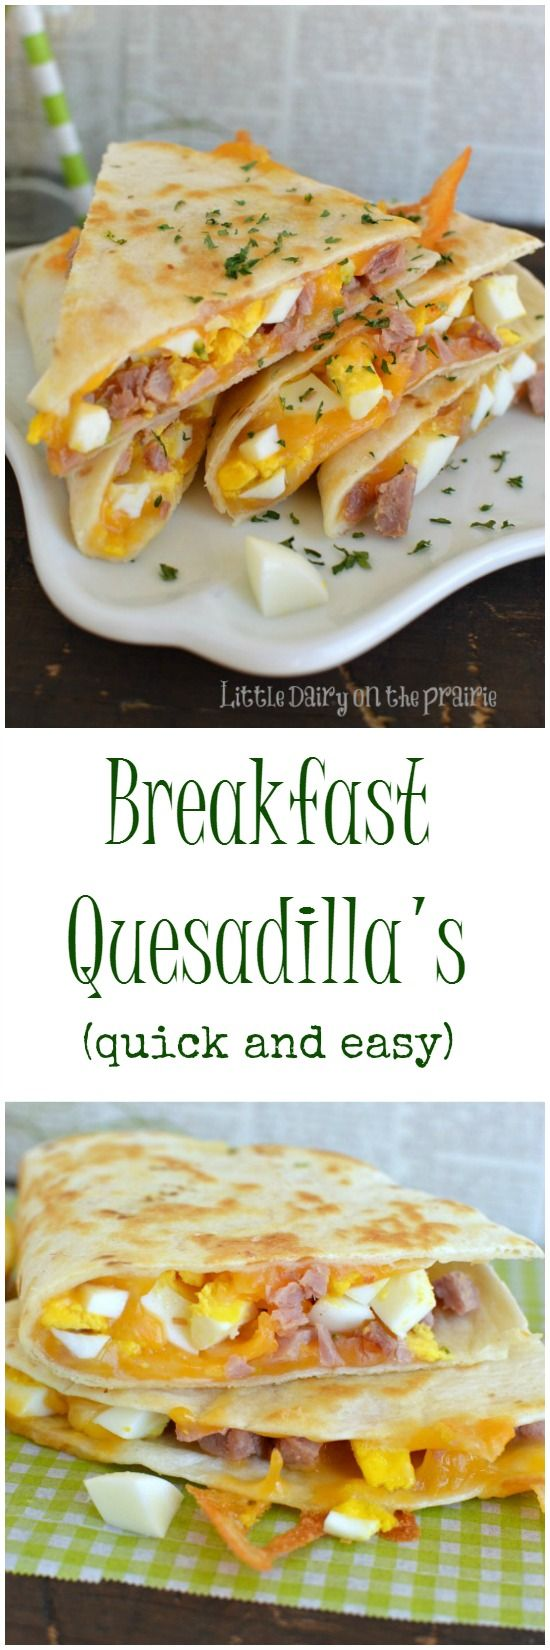 Breakfast Quesadillas The HEALTHY Meal